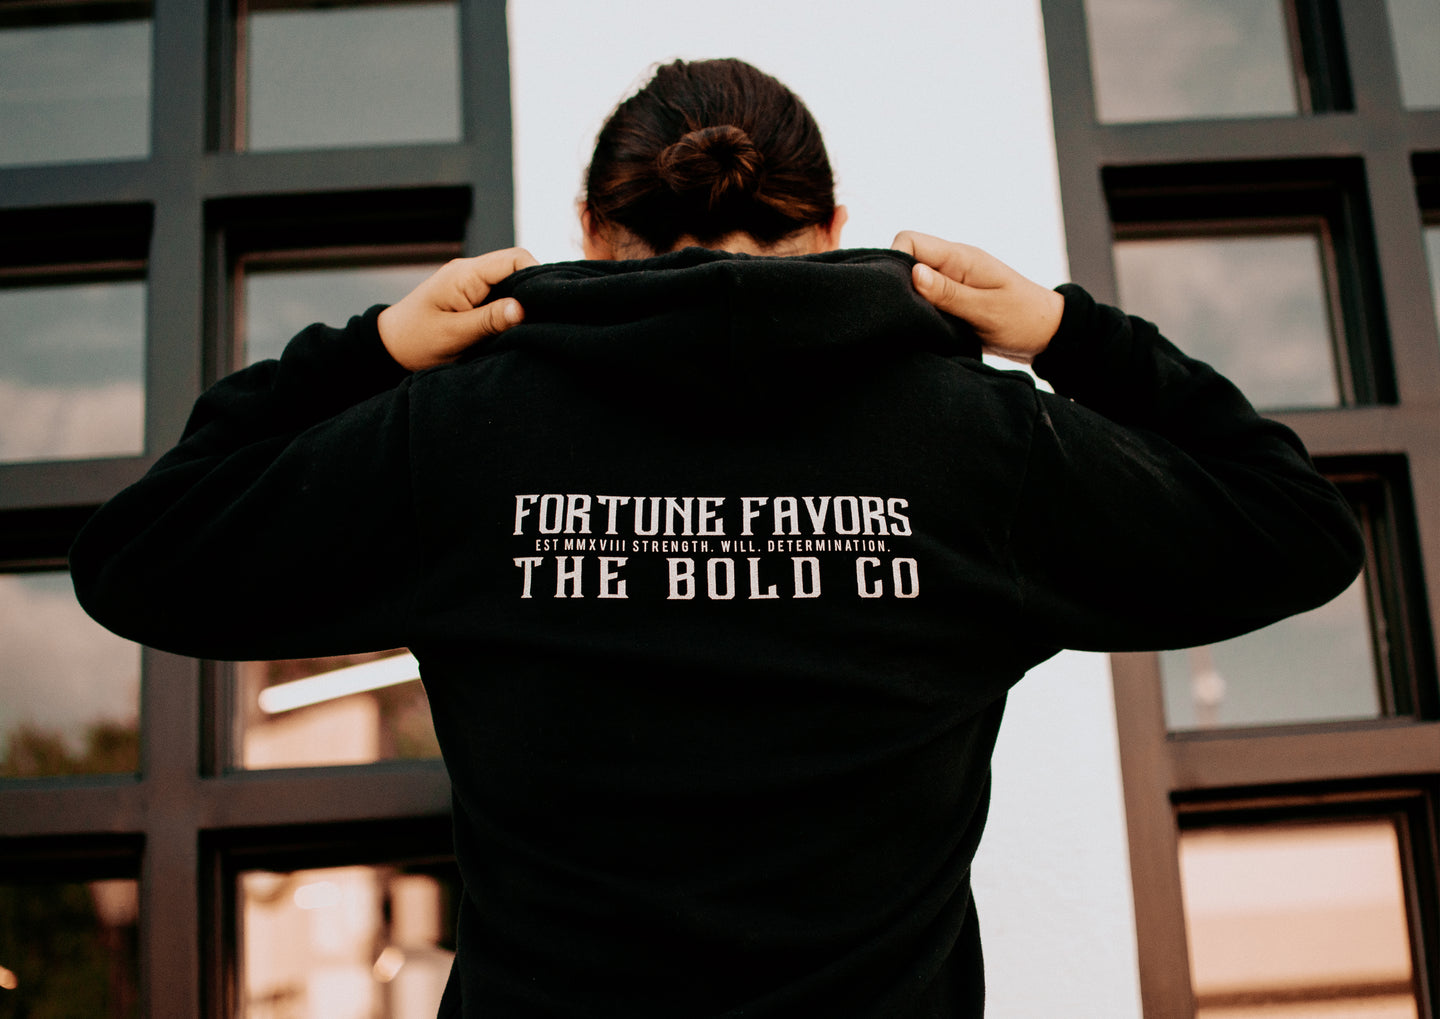 Fortune Favors the Bold Co